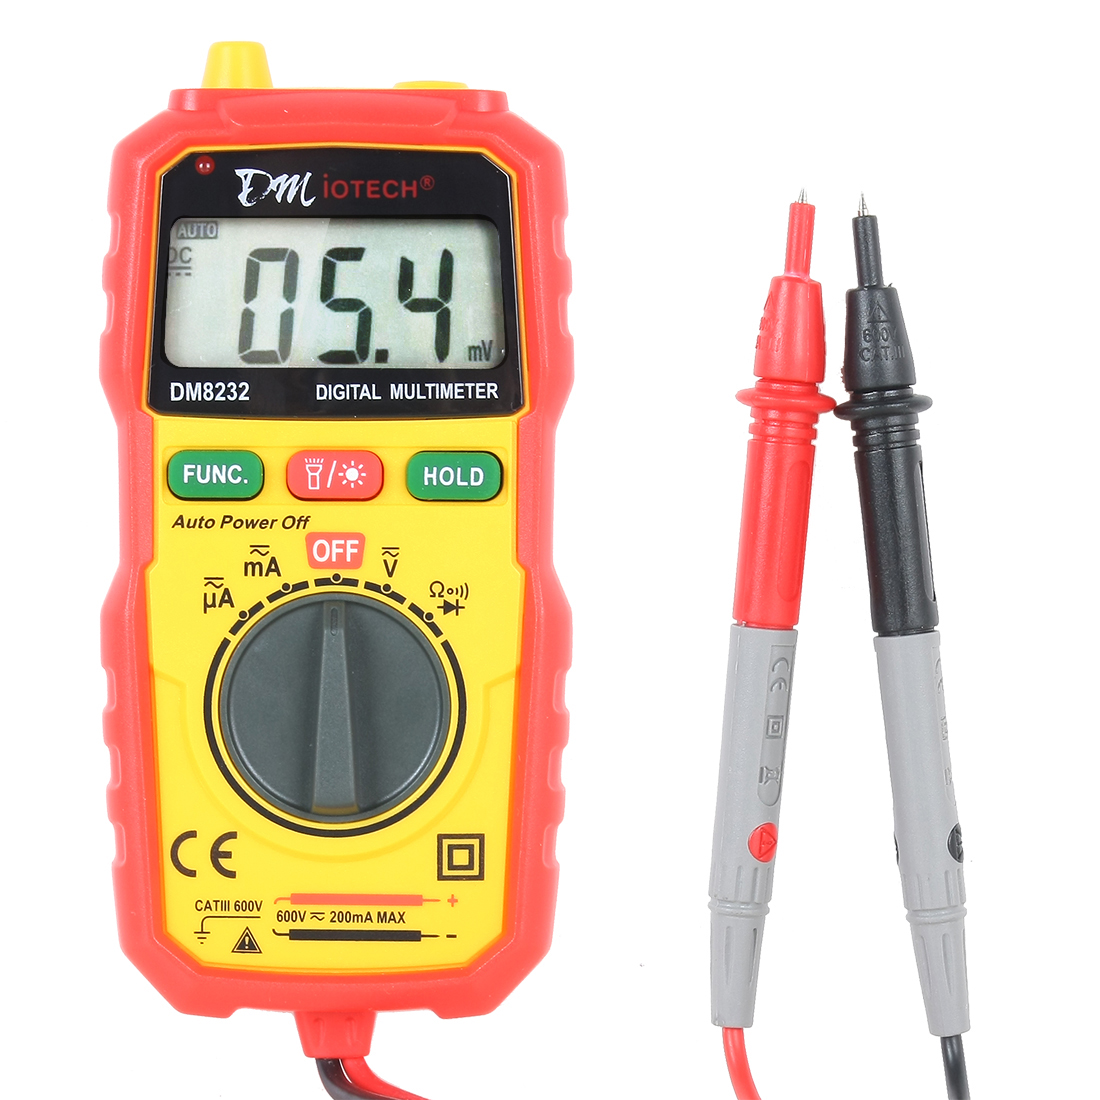 DM8232 Auto Ranging Multimeter 200mA Range AC/DC Current Voltage Resistance Continuity